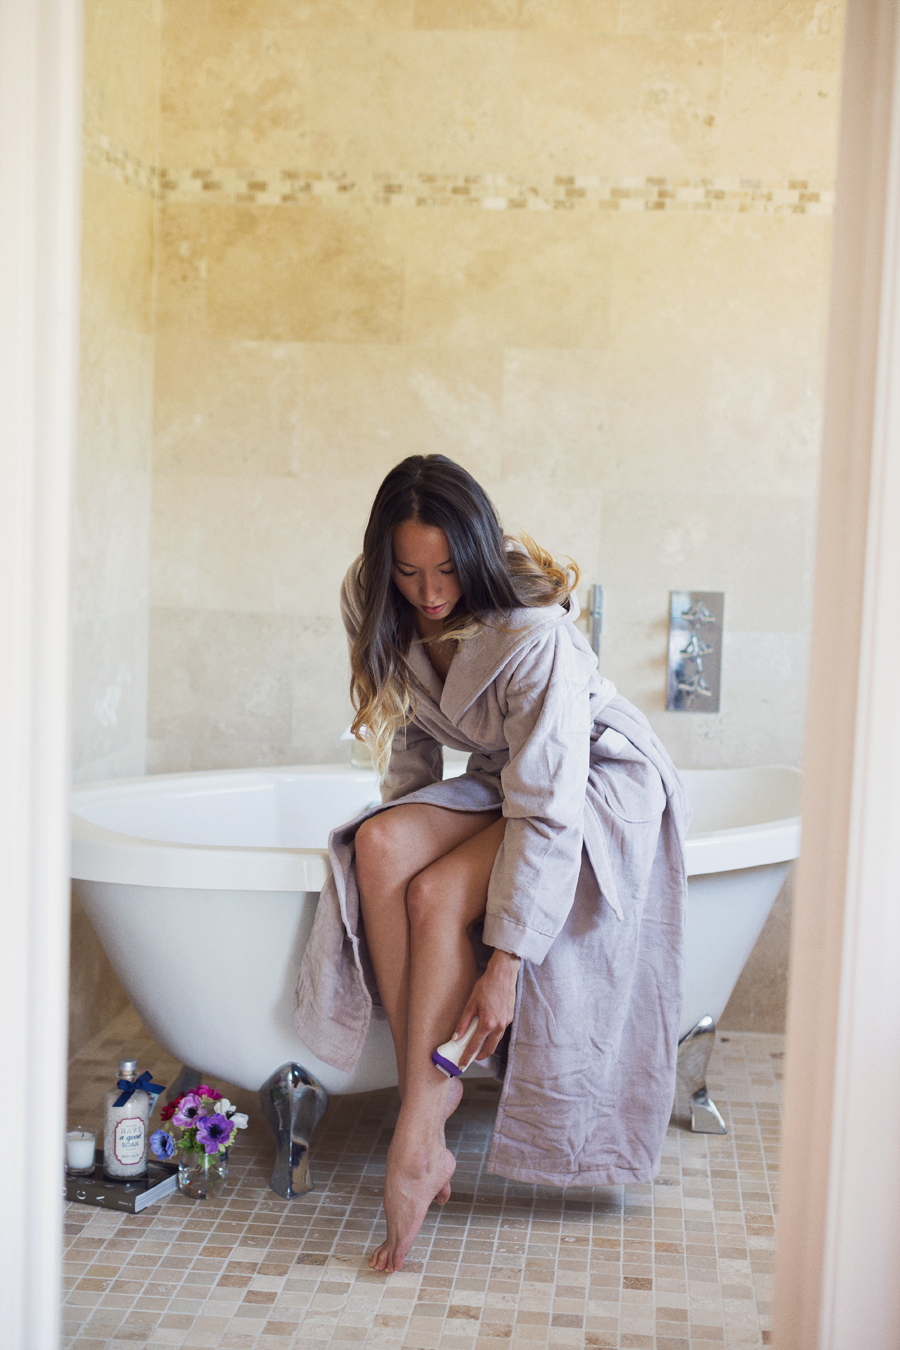 girl in bathrobe shaving legs in a bathroom on a bath tub